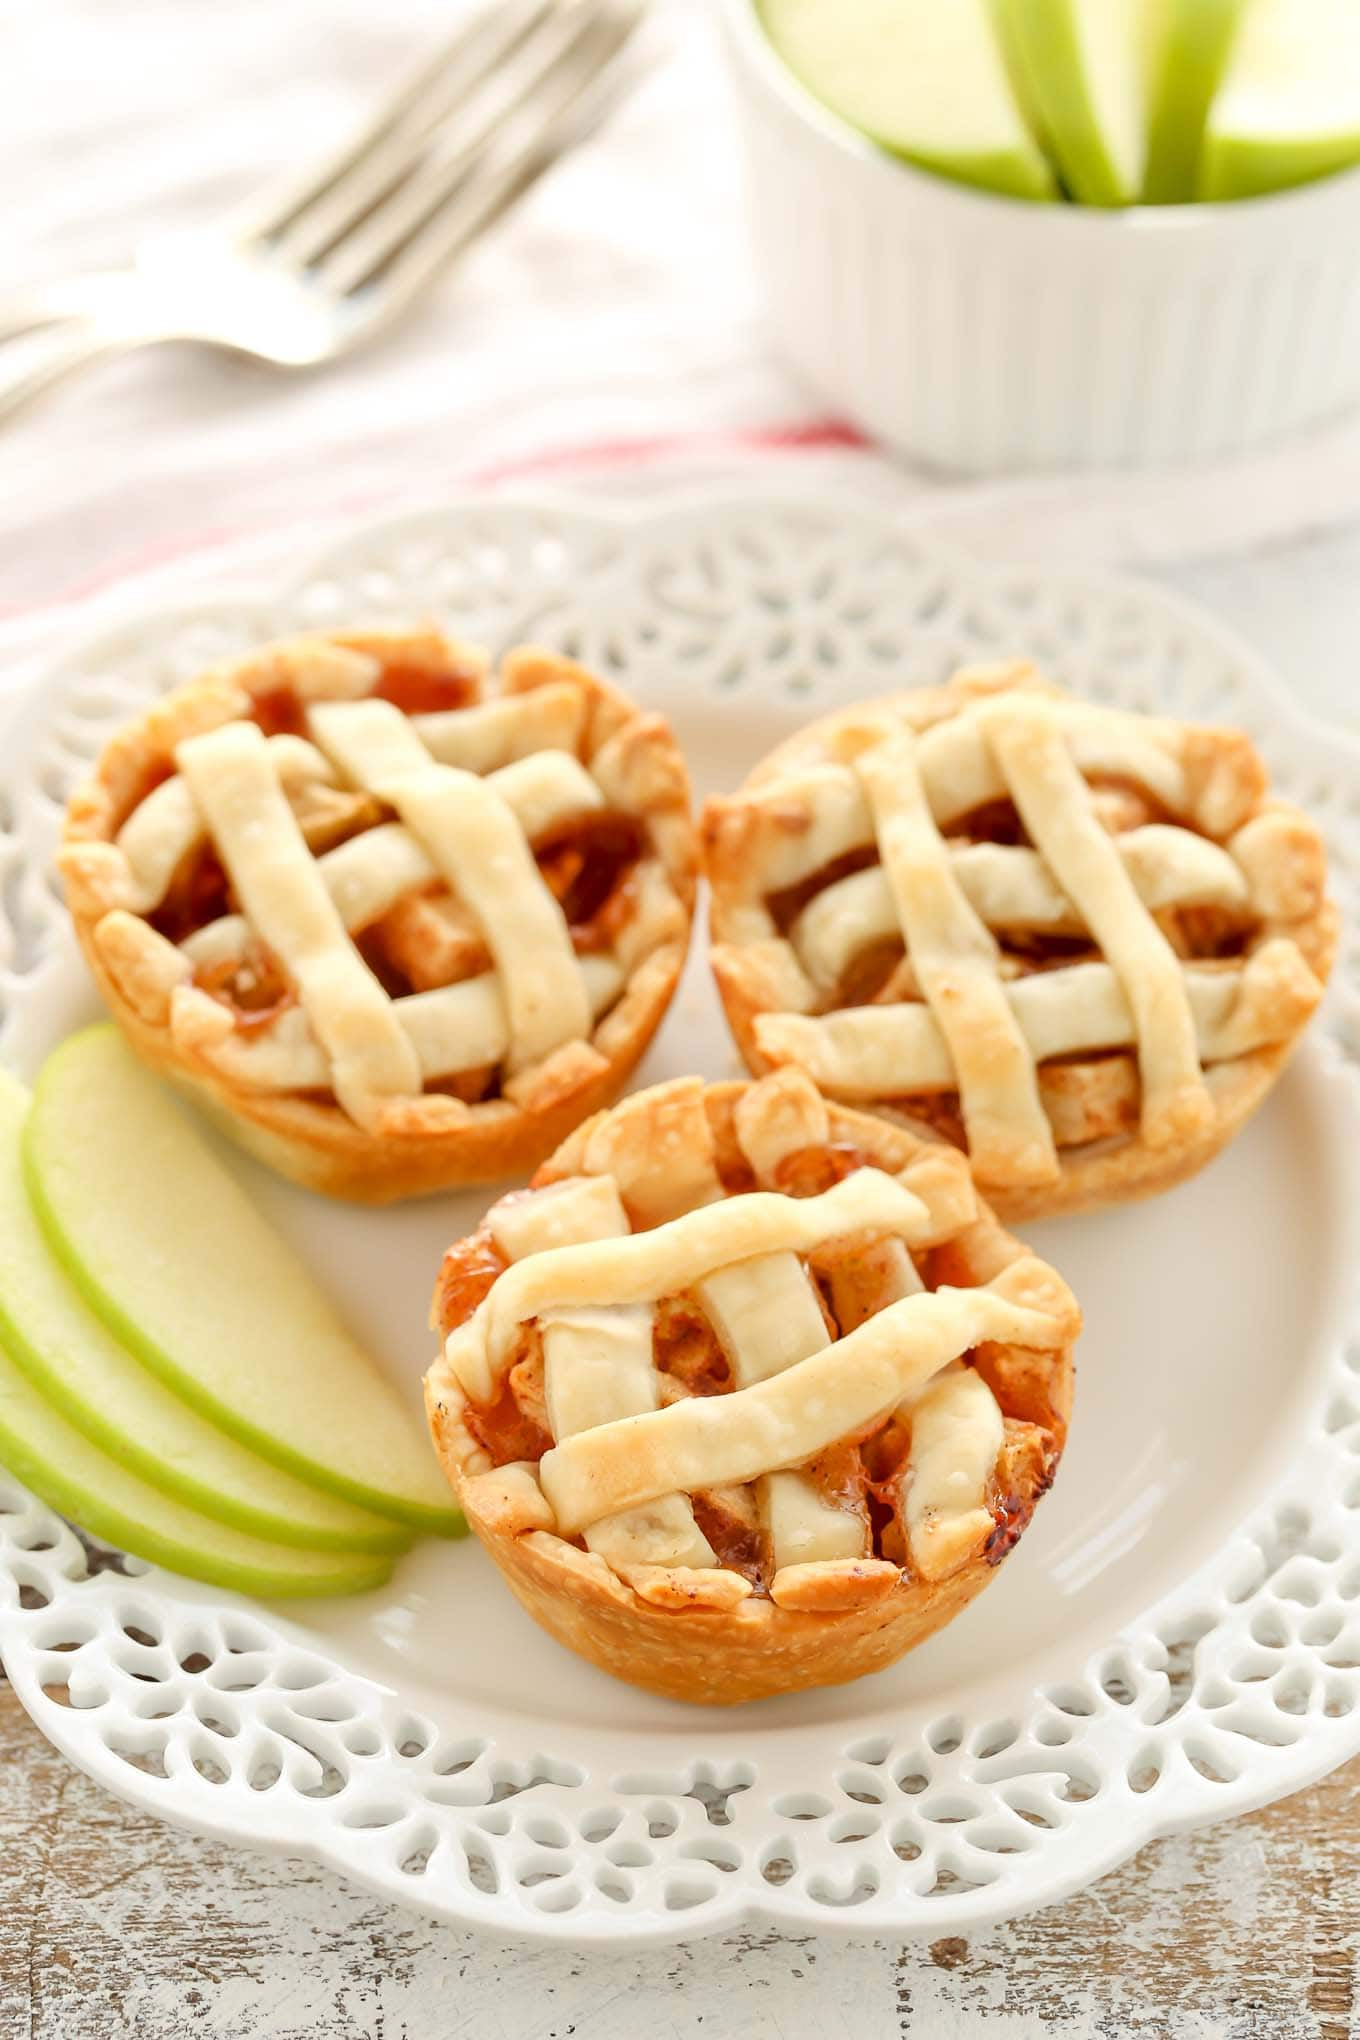 In medium bowl, mix apples, cinnamon and nutmeg; place in pie plate.